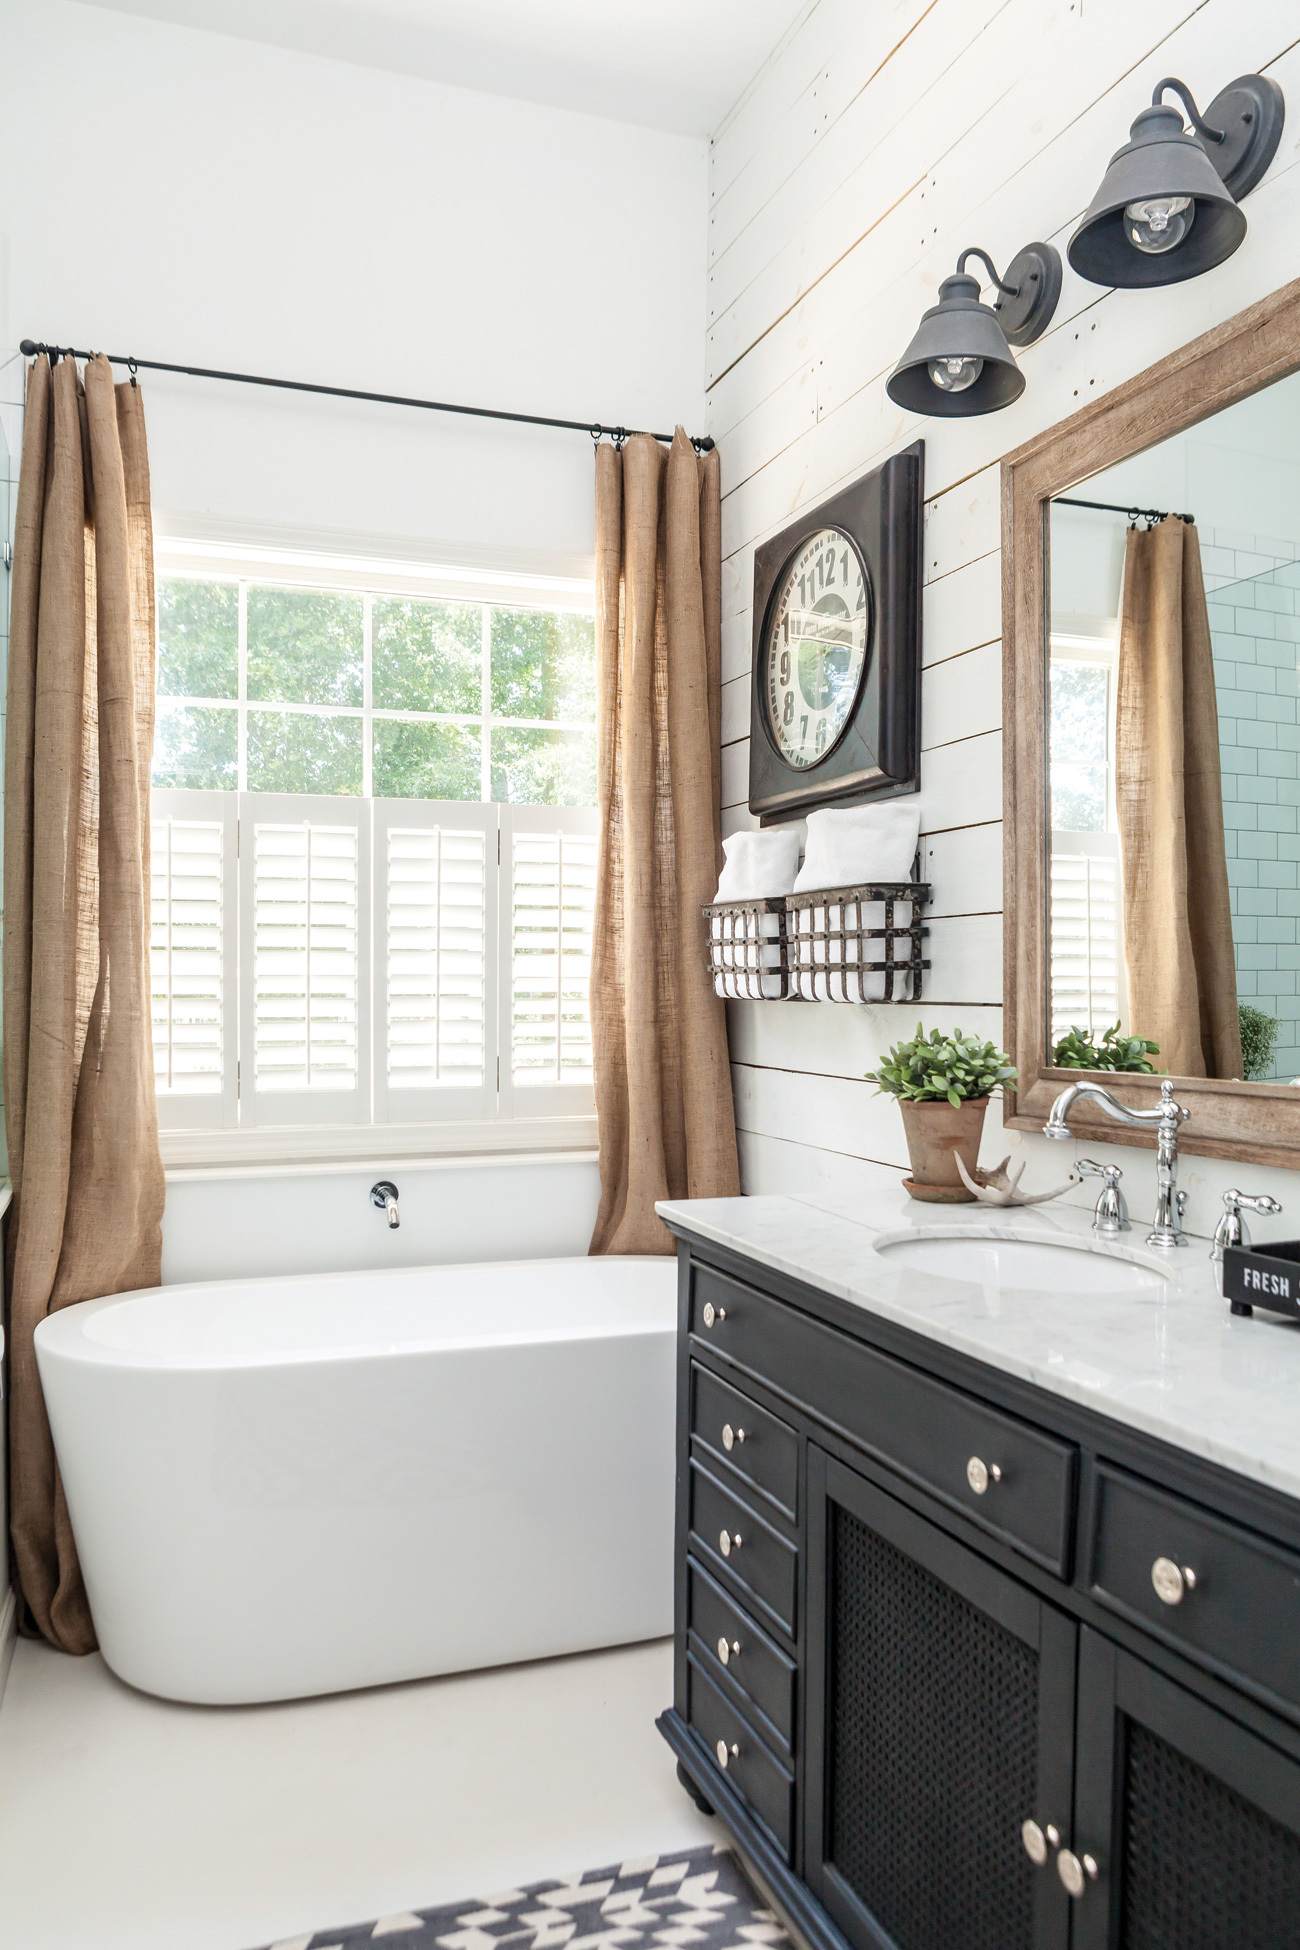 Farmhouse bathroom with tub